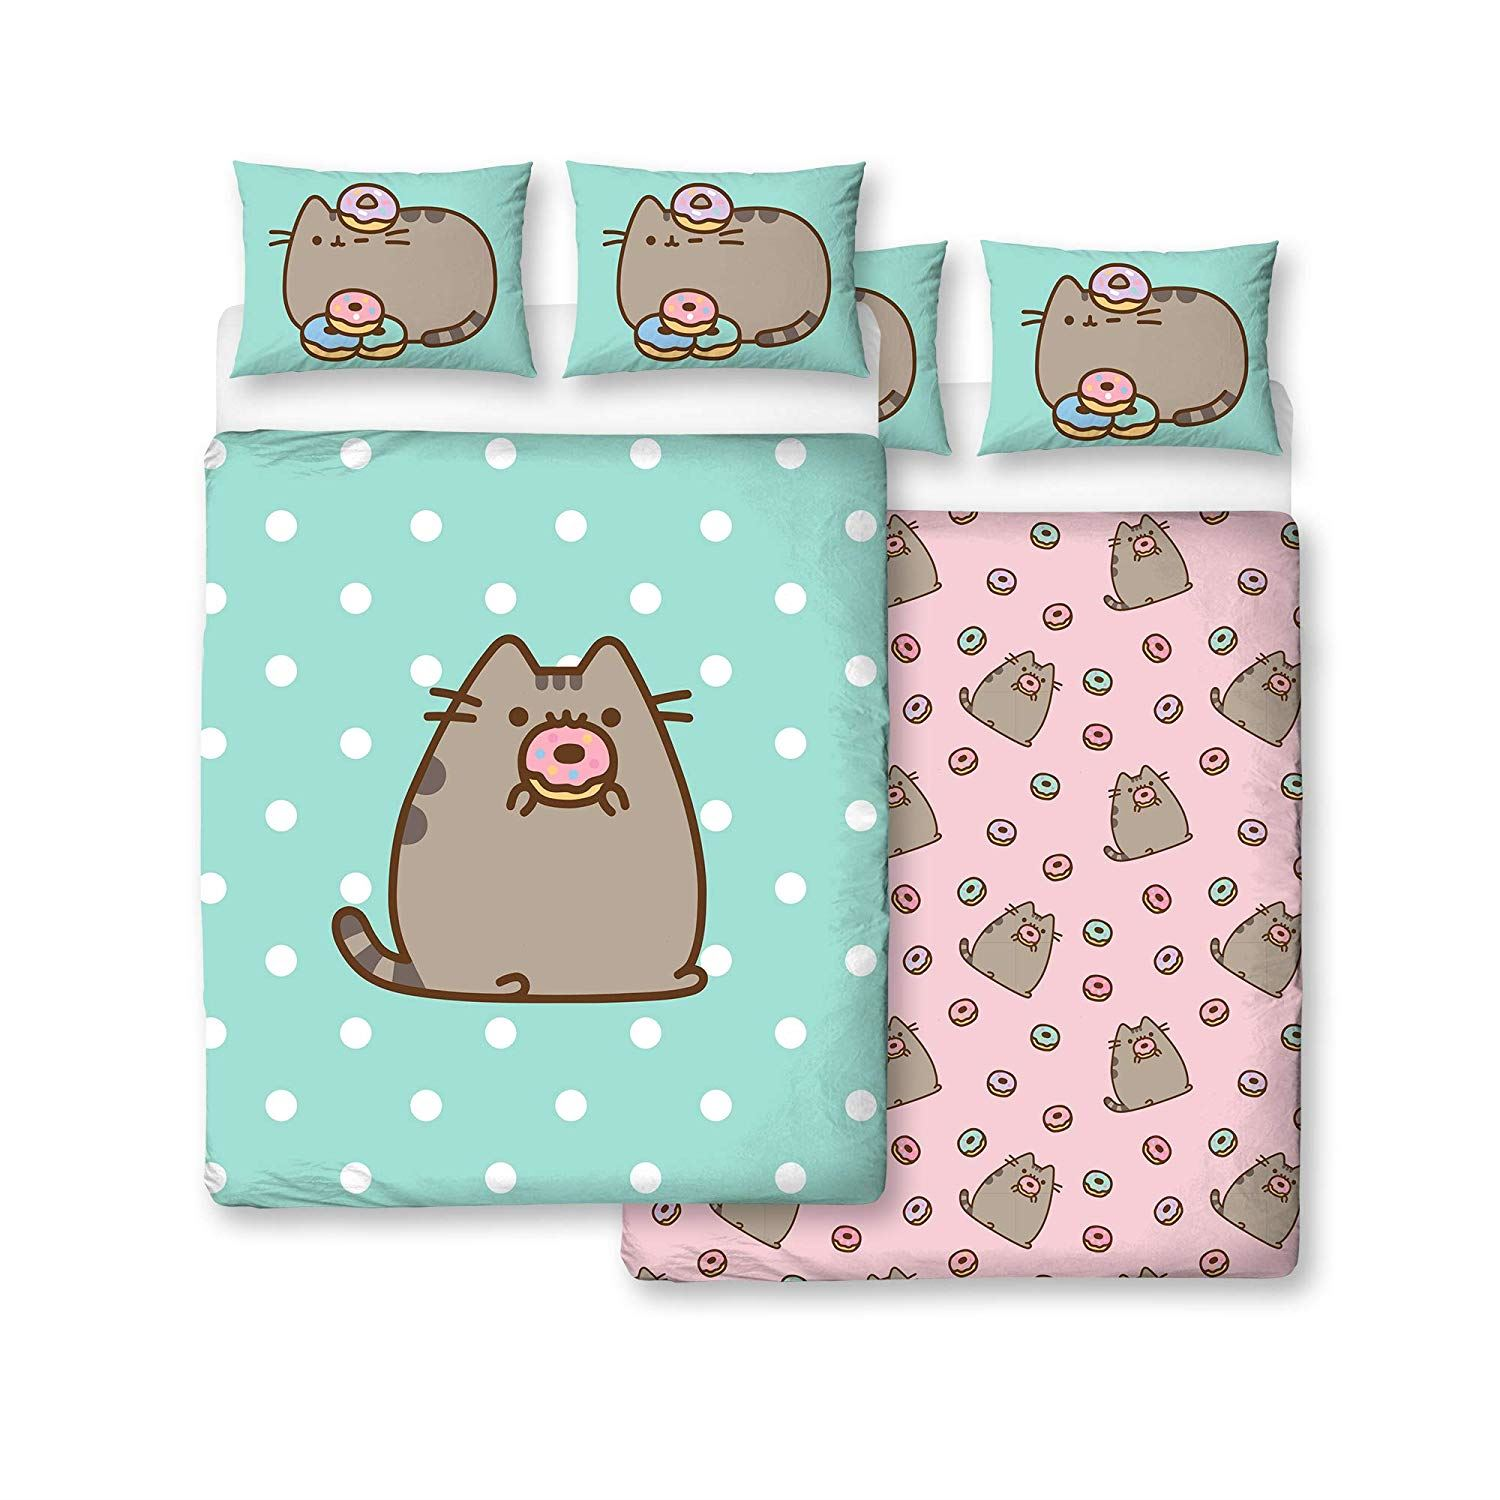 Pusheen-Doughnut-Single-Double-Reversible-Duvet-Cover-Bedding-Set thumbnail 4